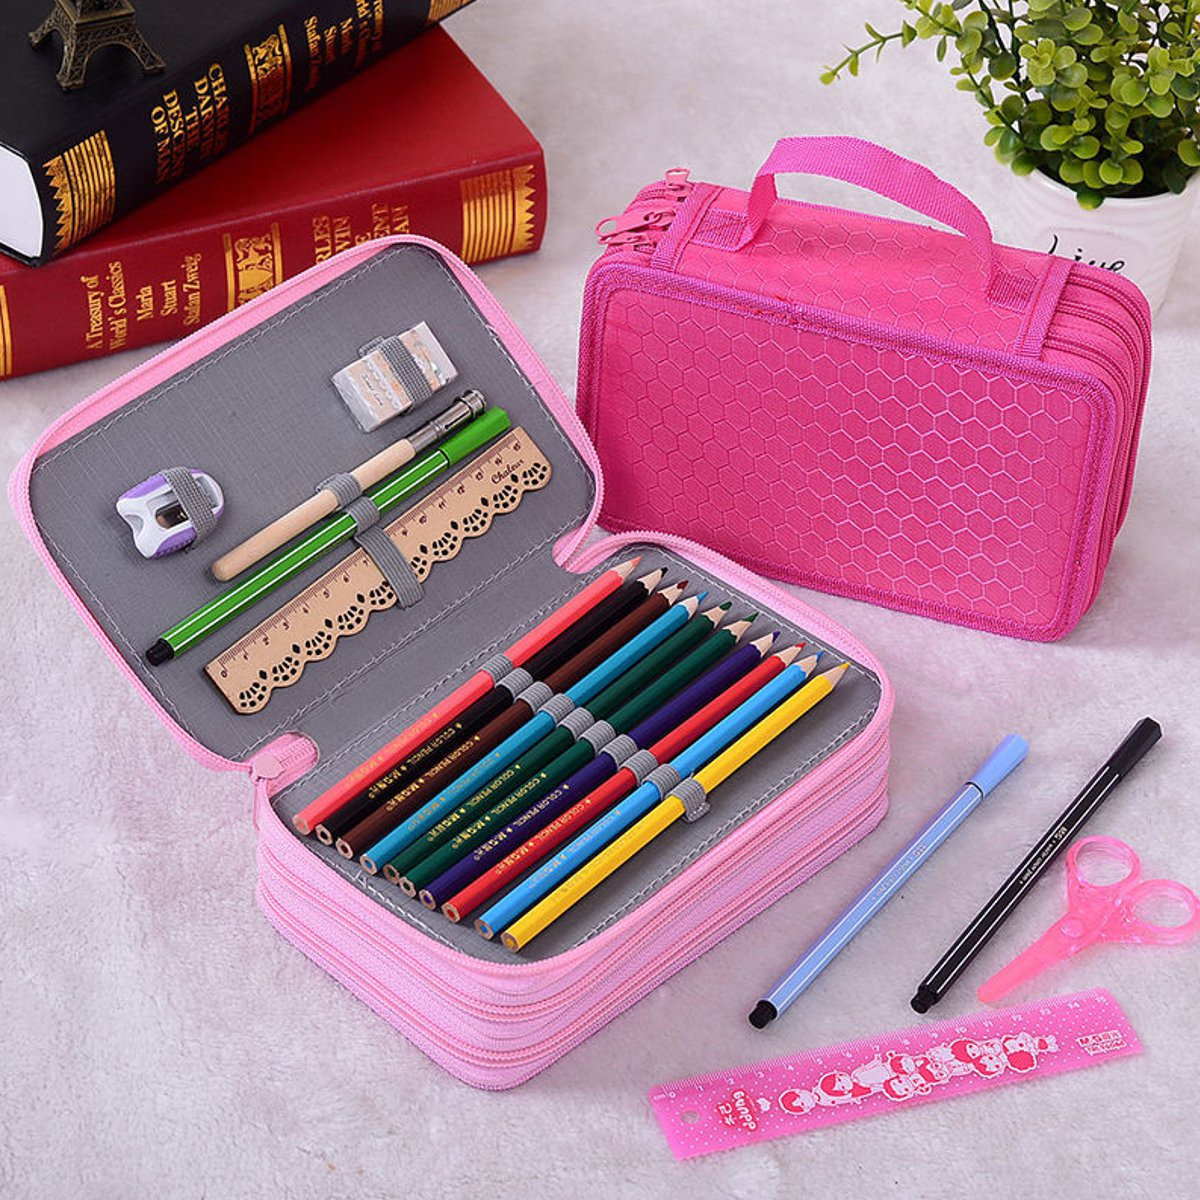 Colors portable drawing sketching pencils pen case holder bag for 72pcs pencils cheap newchic